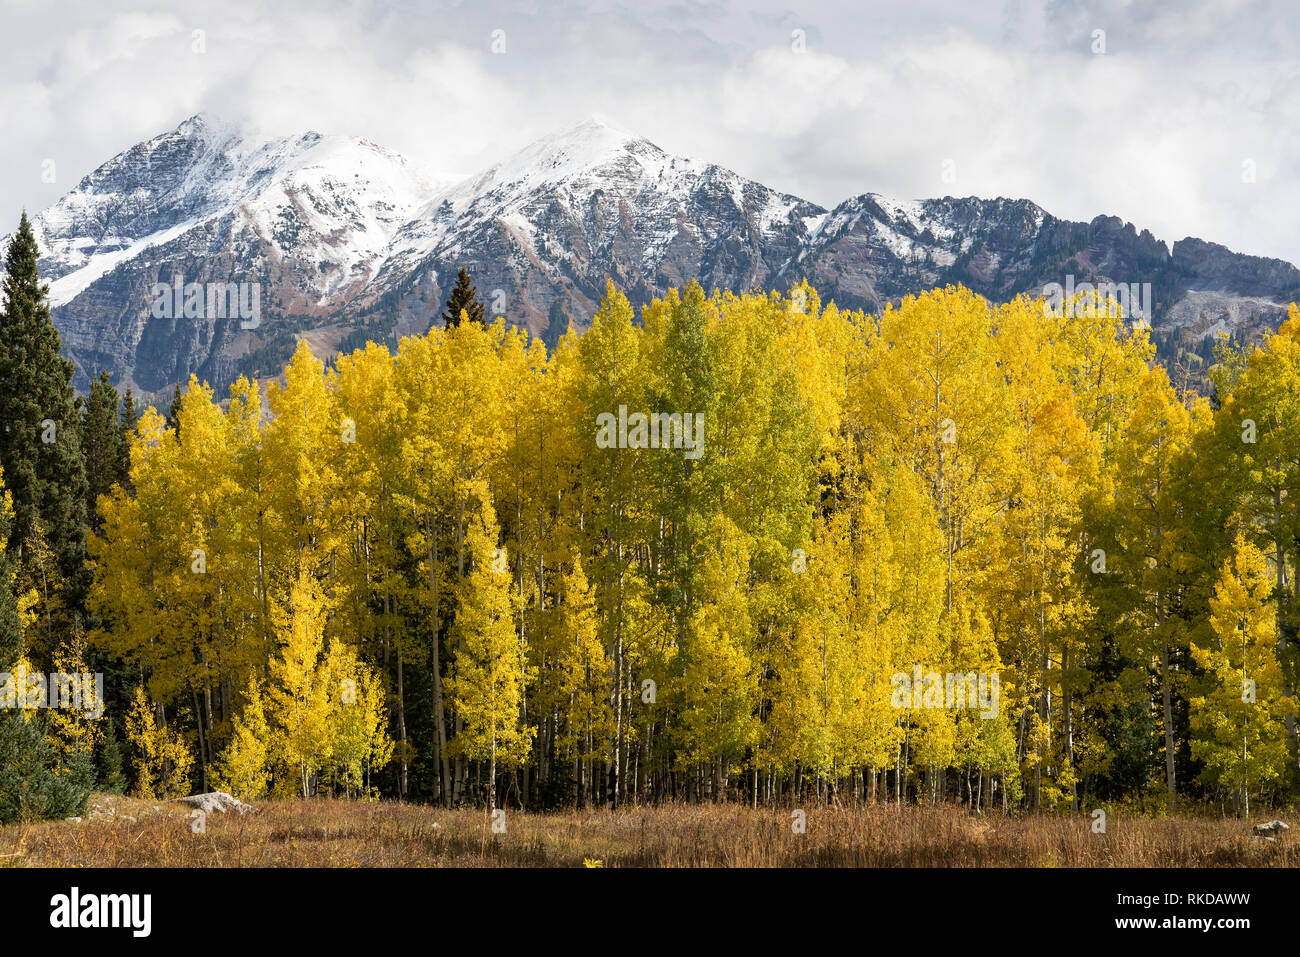 East and West Beckwith Mountains viewed from Kebler Pass Road. Located in Gunnison National Forest, Colorado. Stock Photo